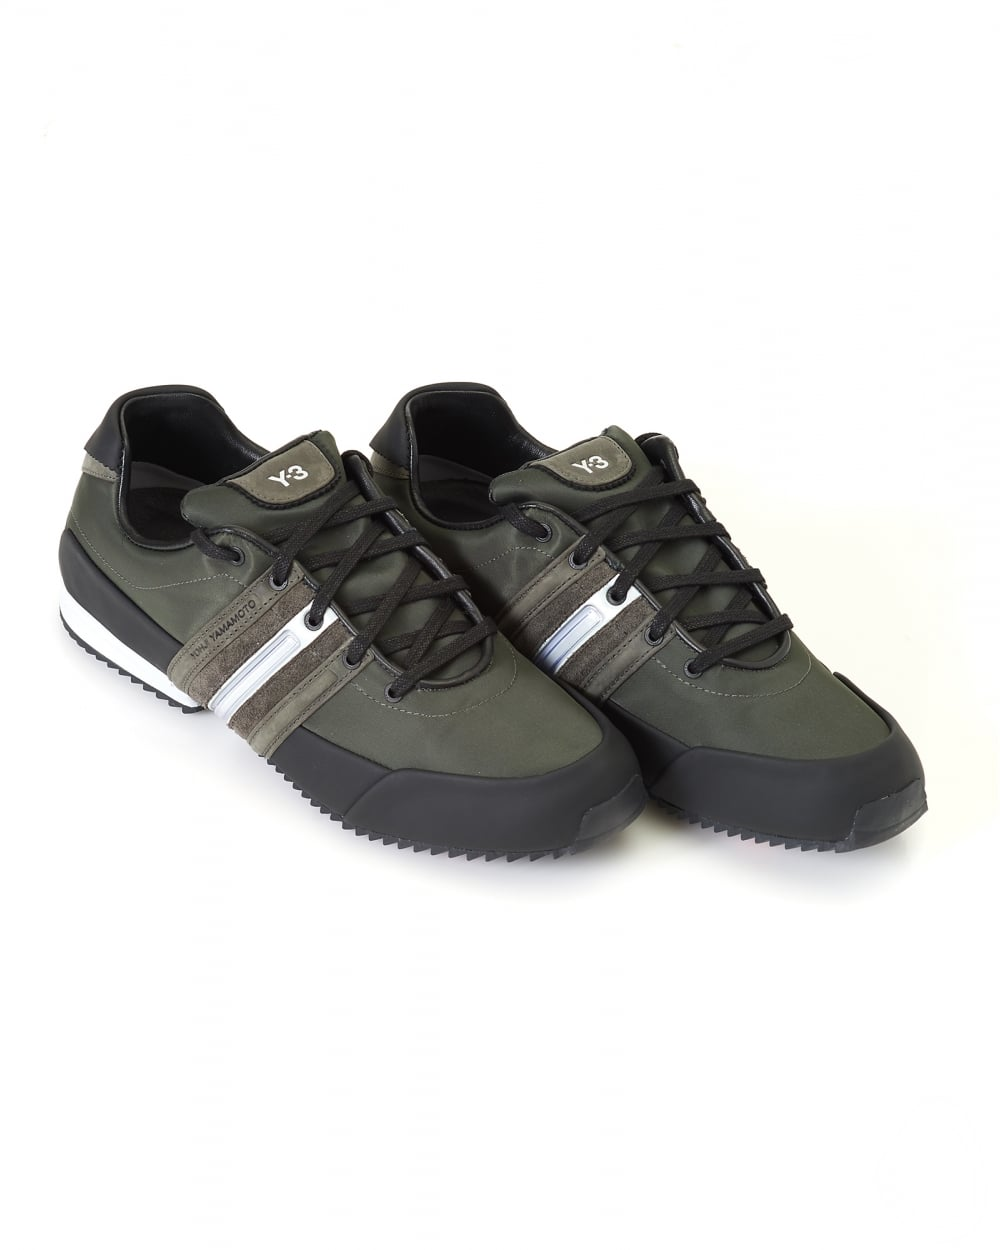 3f3596a93e1160 Y-3 Mens Low Top Trainers